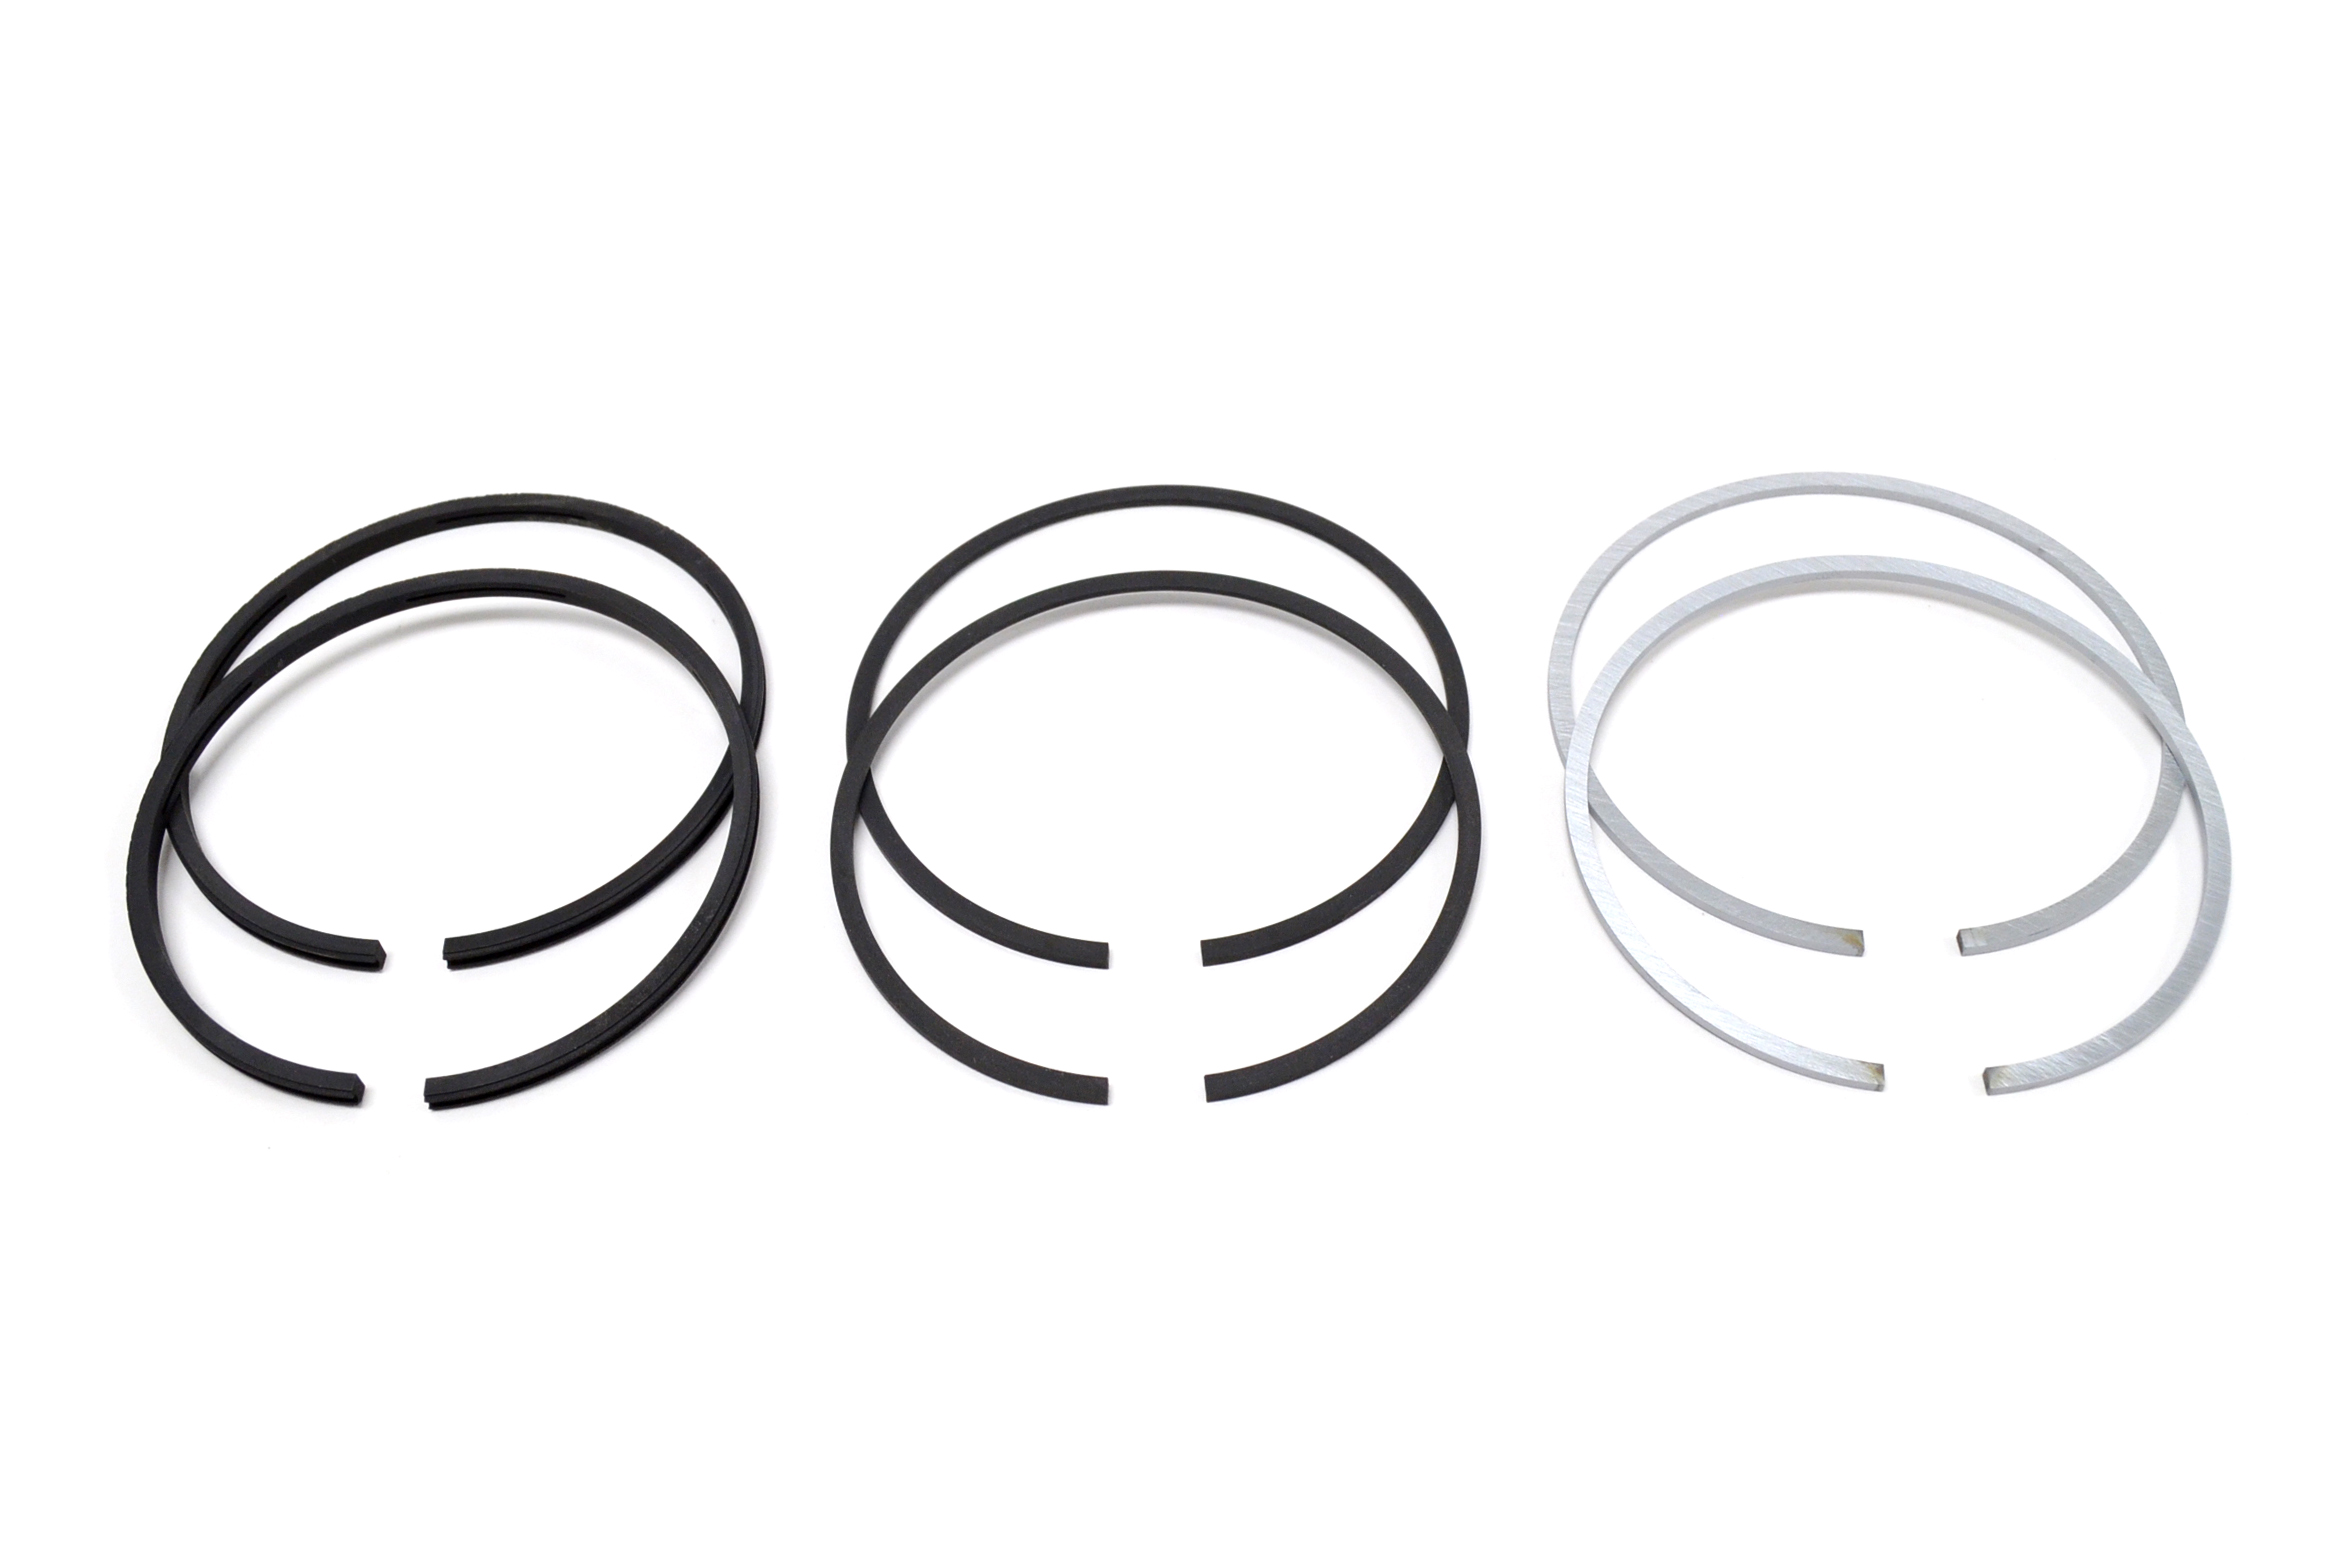 Bsa A65 All Years Piston Ring Set Hastings Standard R